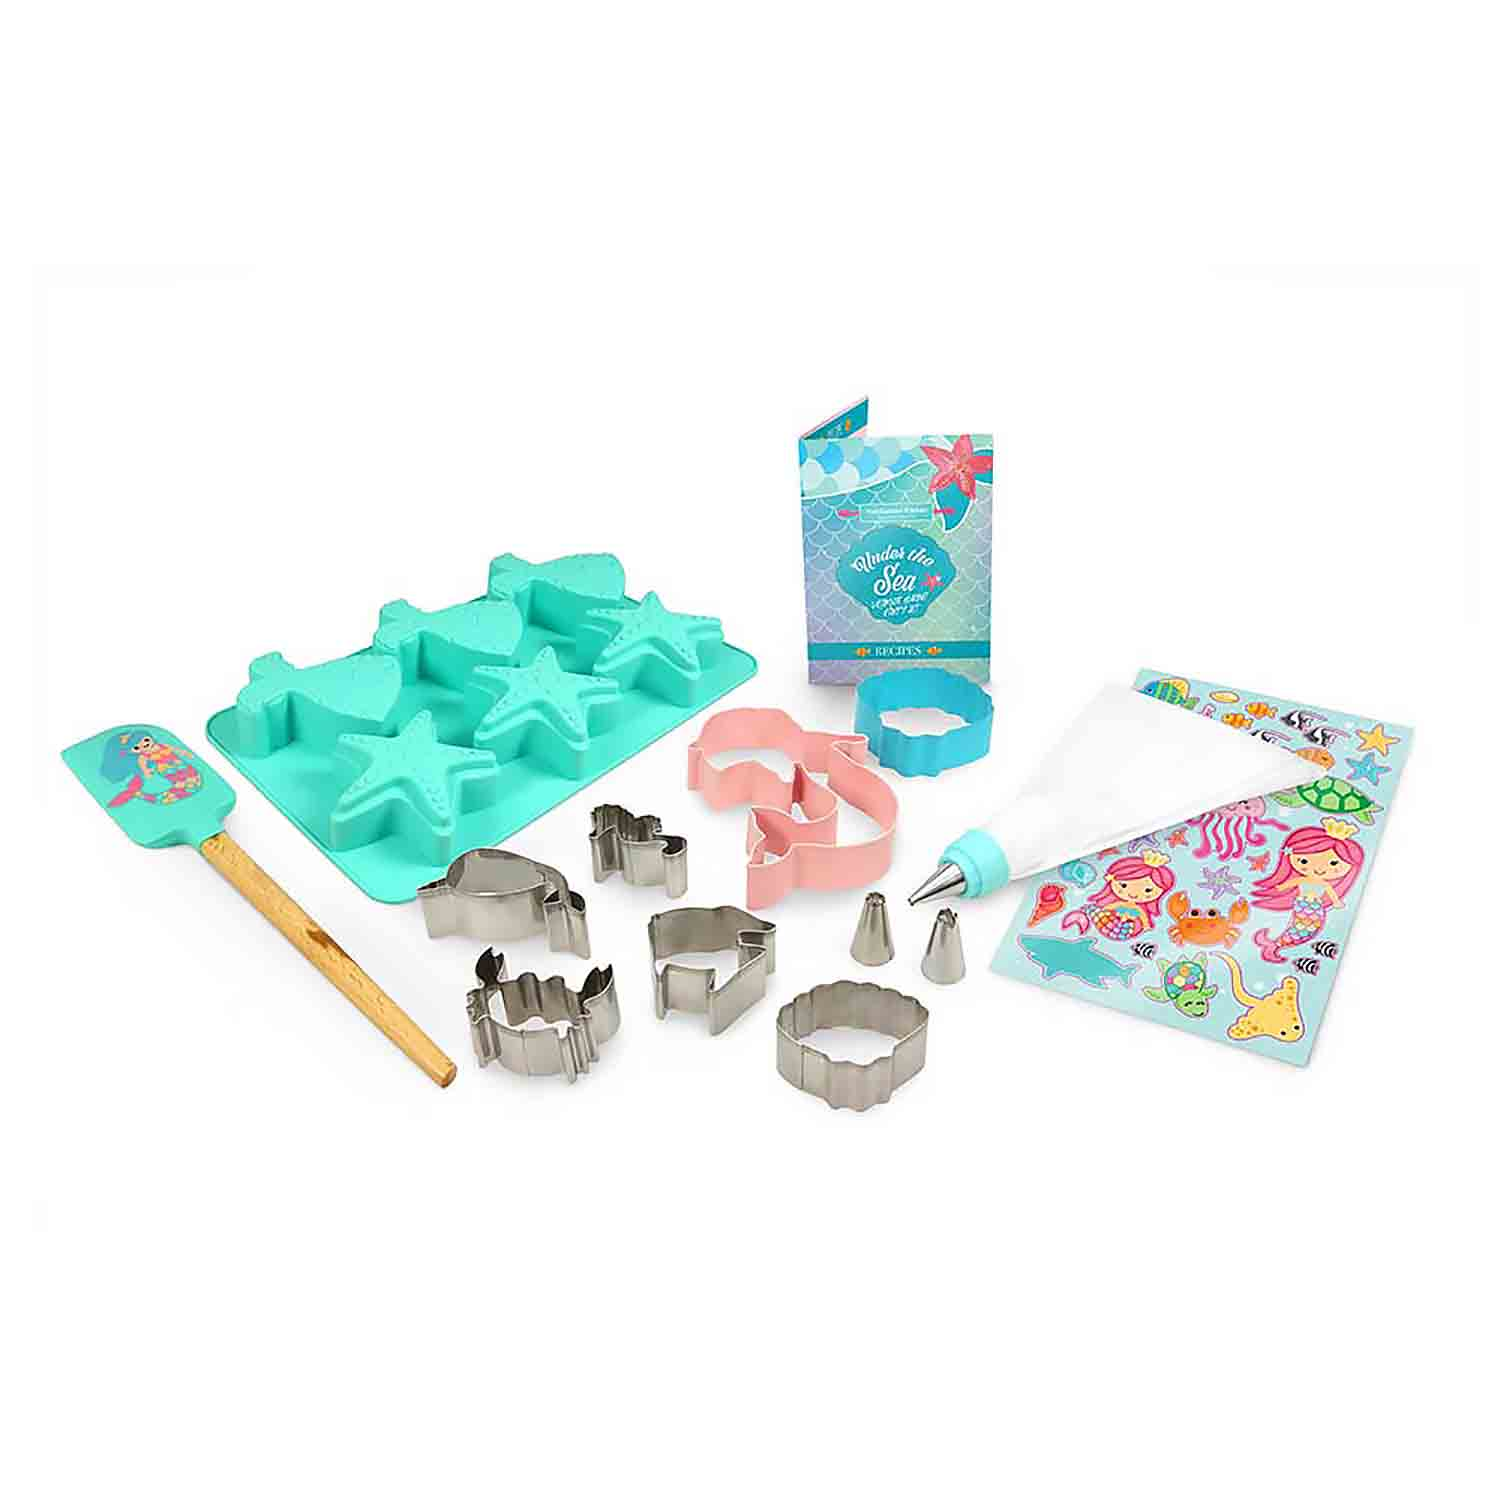 Under the Sea Baking Set